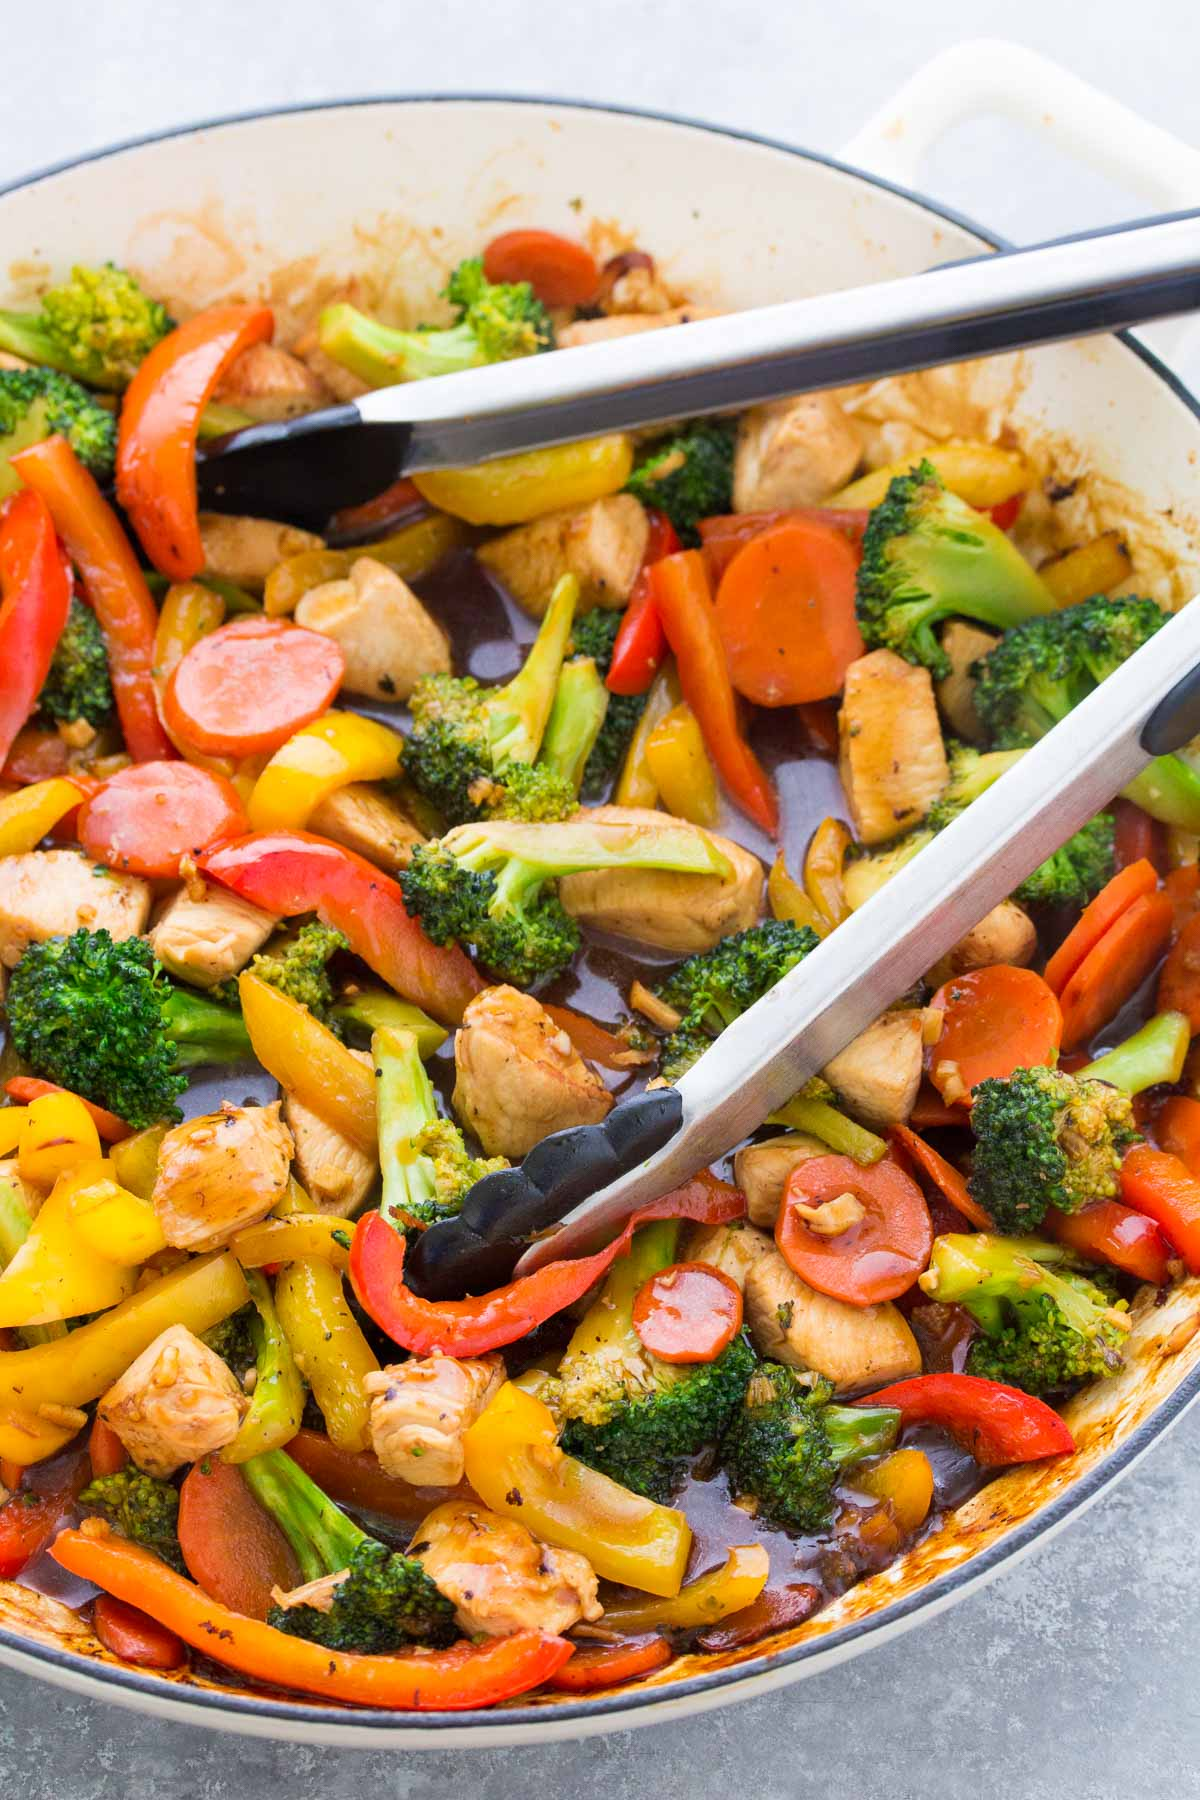 Chicken stir fry with vegetables and sauce in a large skillet.